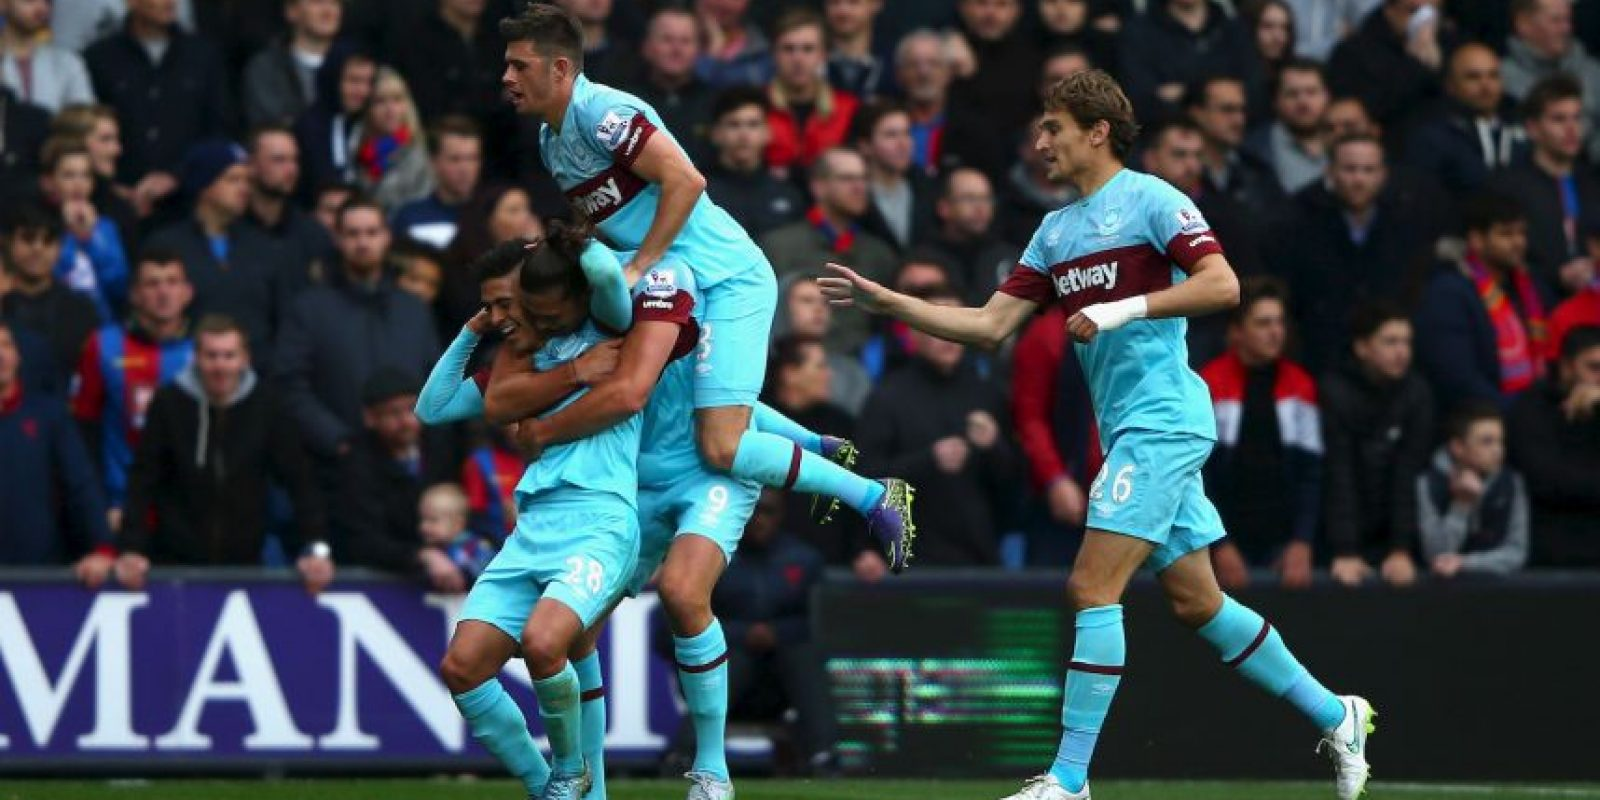 PREMIER LEAGUE: West Ham (4) vs. Chelsea (12) en Boleyn Ground Foto: Getty Images